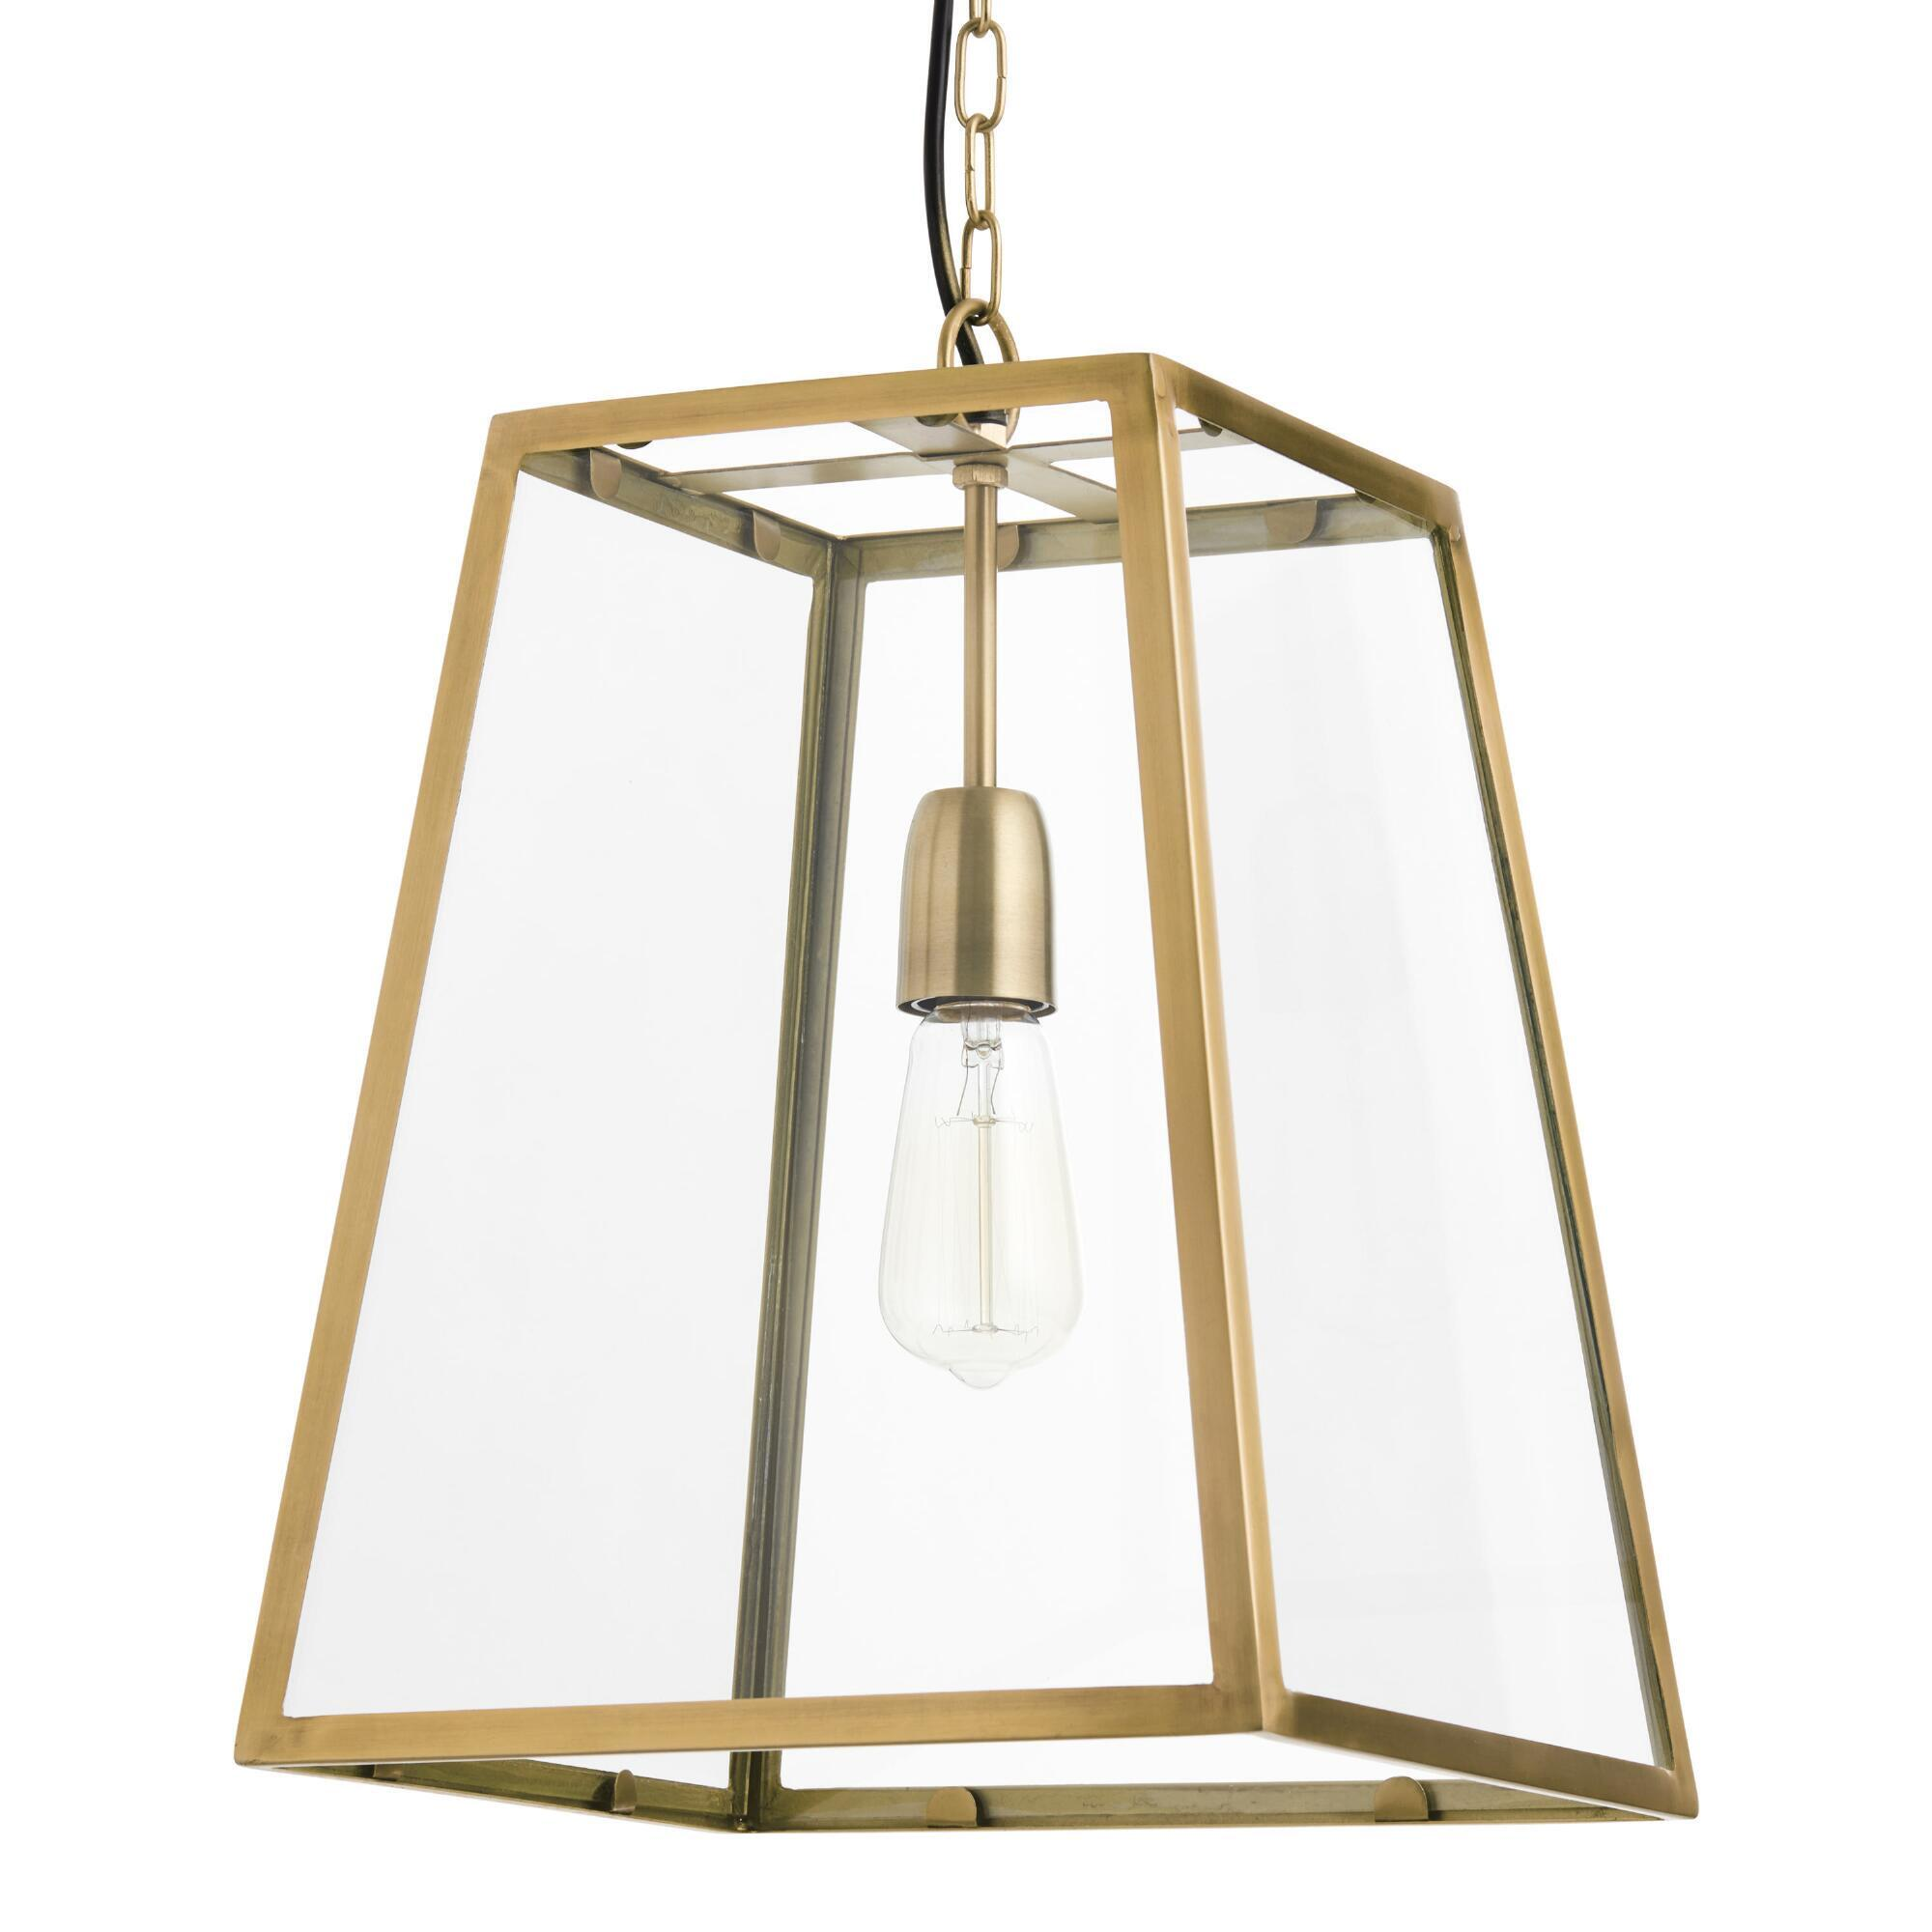 Four-Sided Glass Hanging Pendant Lantern: Black by World Market